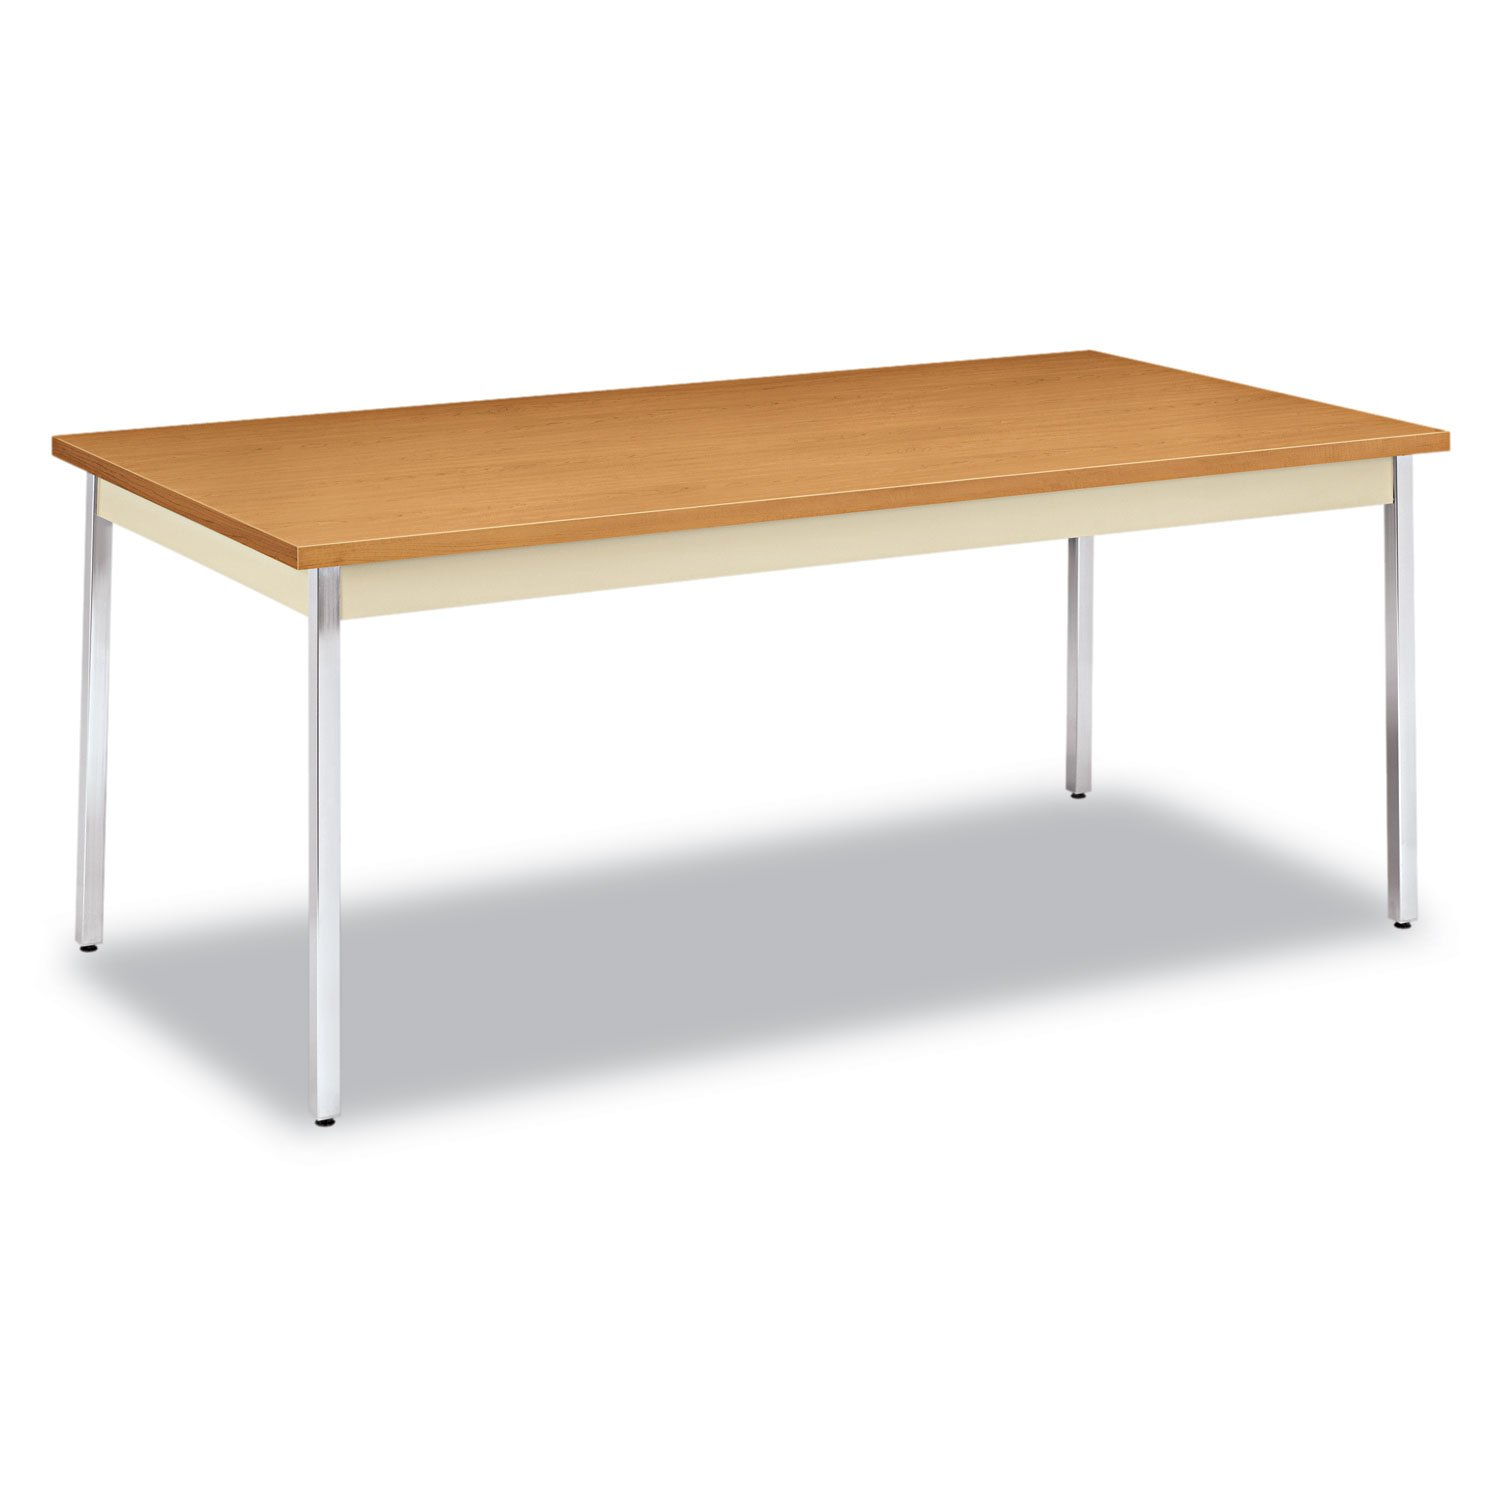 HON The Company Utility Table, 72 by 36 by 29-Inch, Harvest/Putty